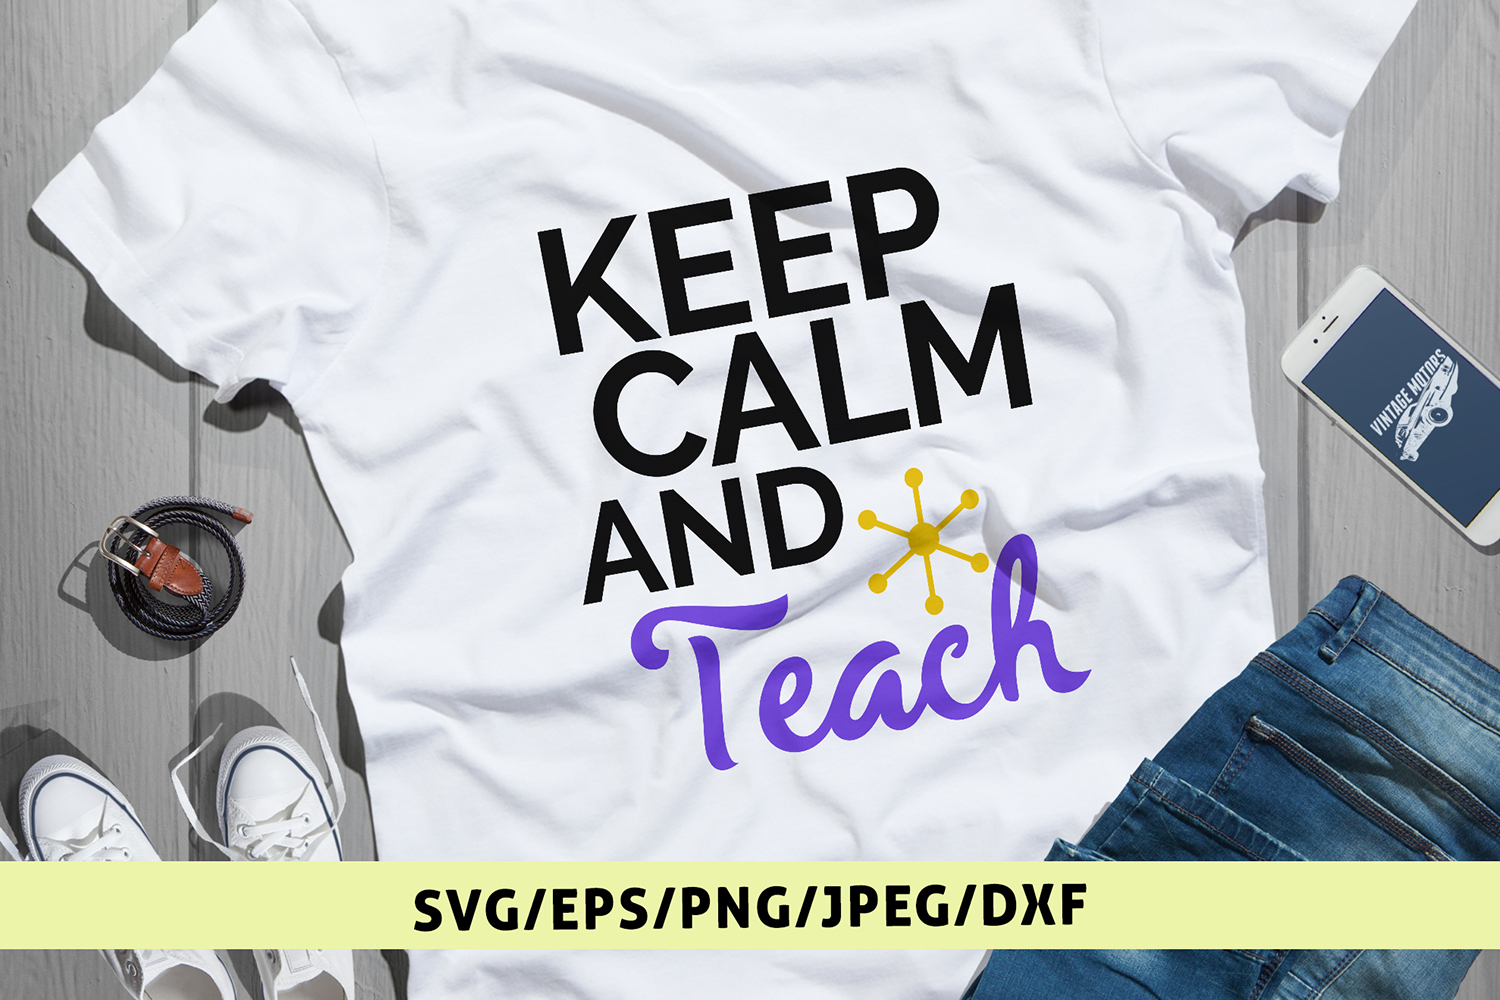 Keep Calm And Teach - Teacher SVG EPS DXF PNG Cutting Files example image 1